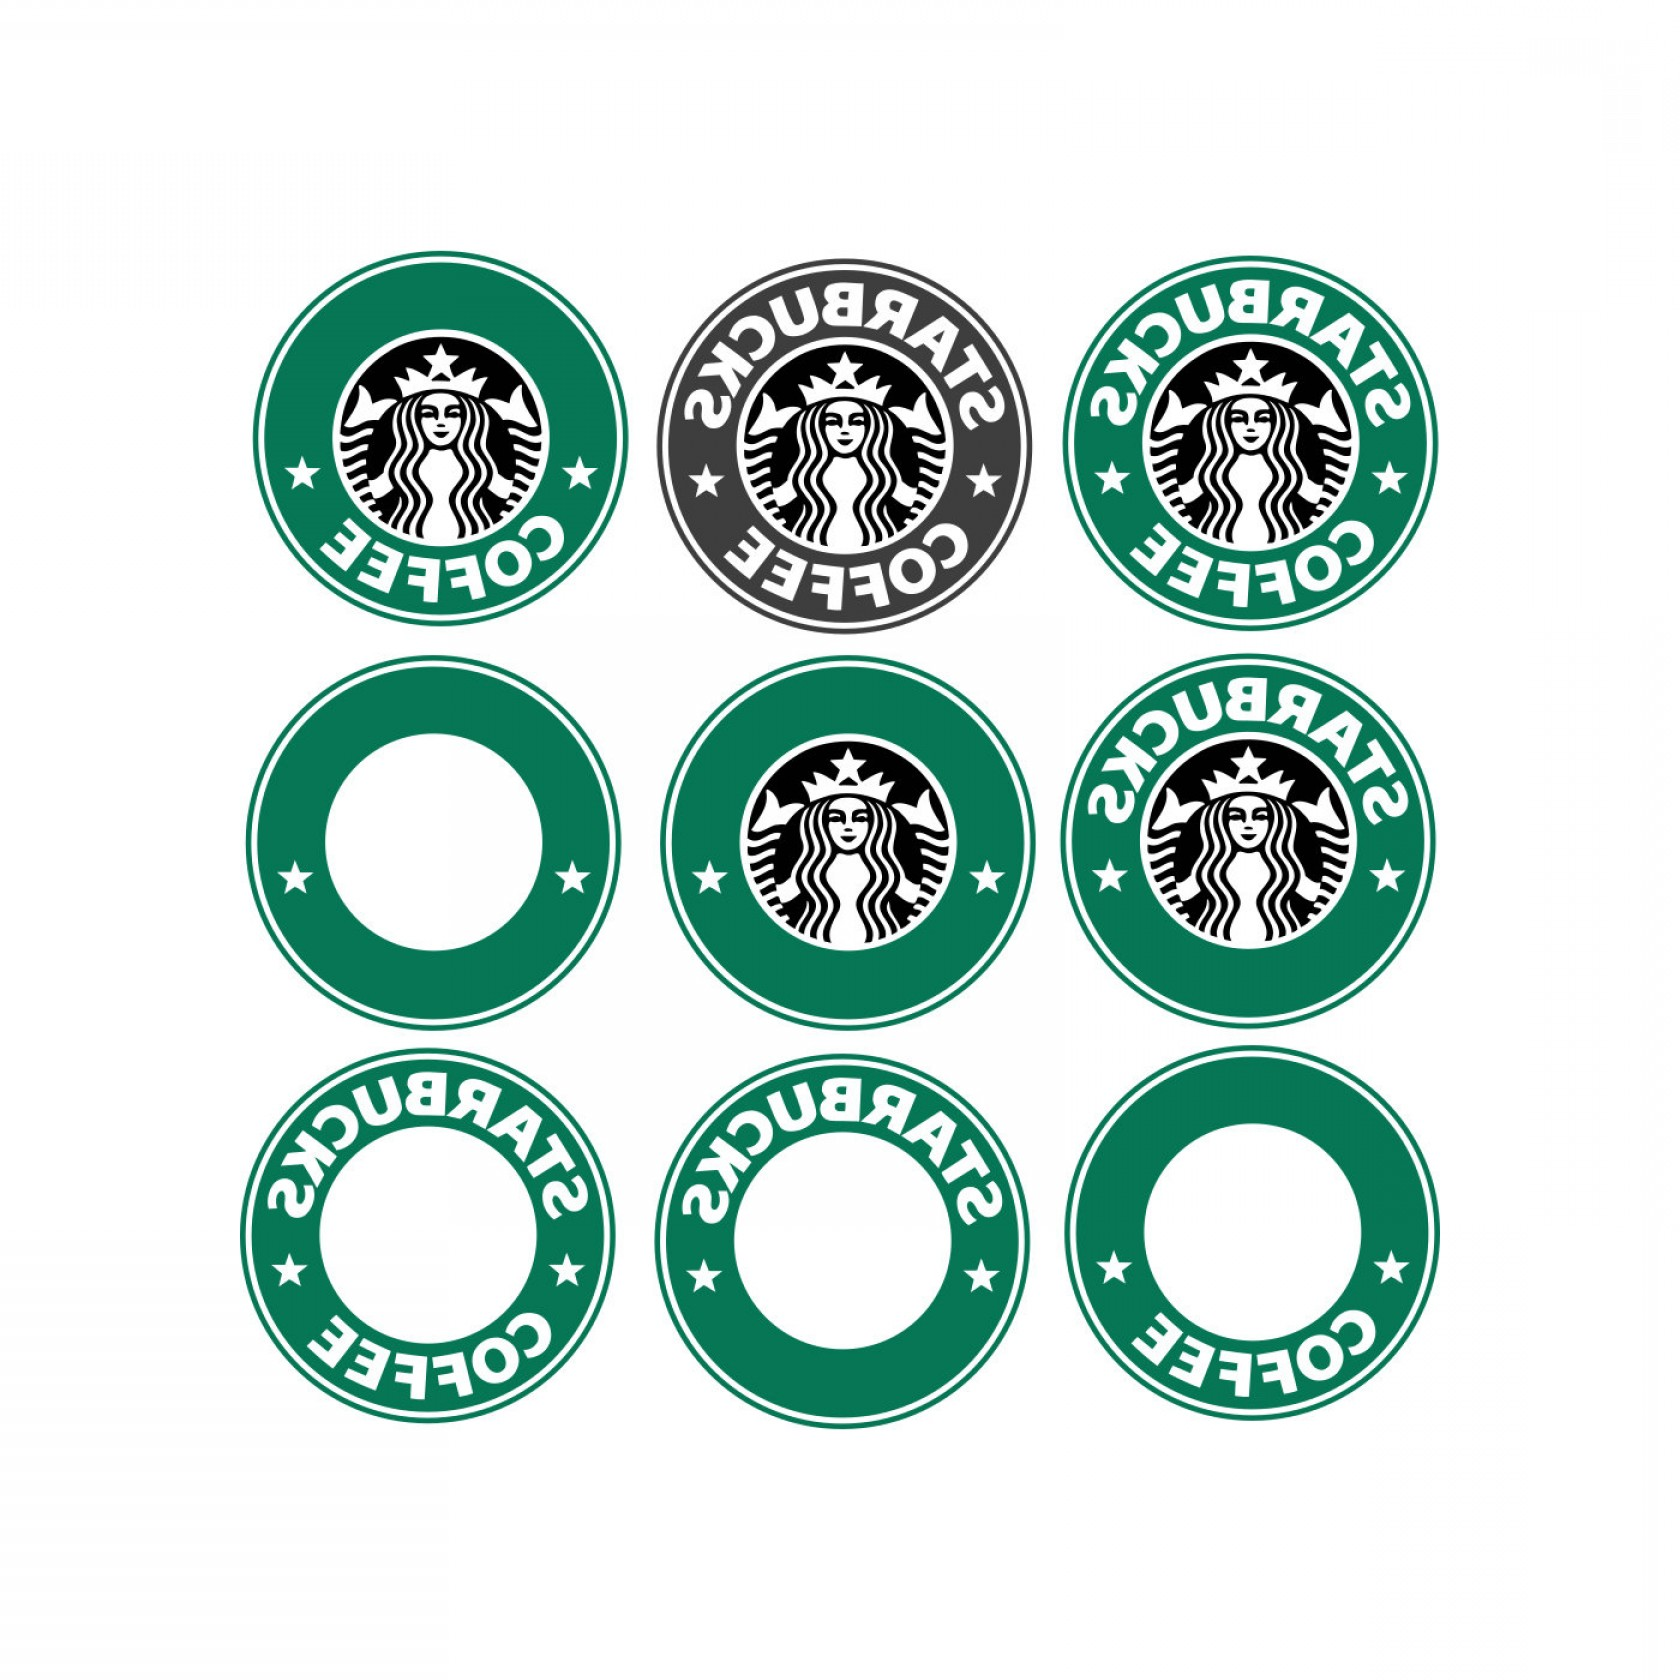 1680x1680 Starbucks Logo Svg Files Starbucks Eps Sohadacouri